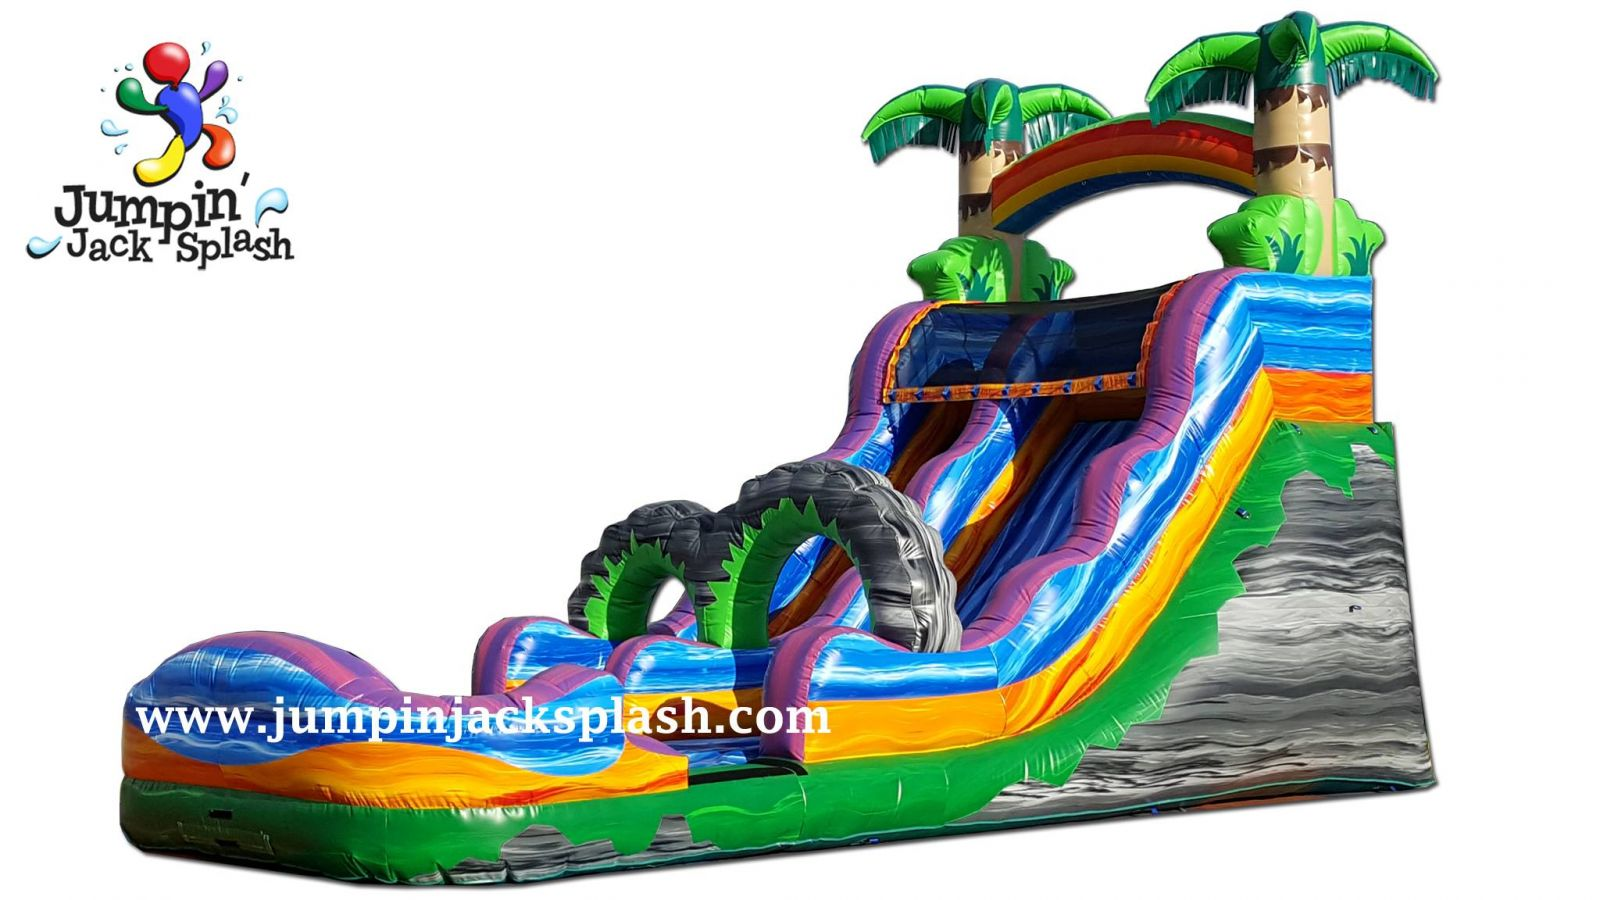 Maui Splash Water Slide Jumpin Jack Splash Utah